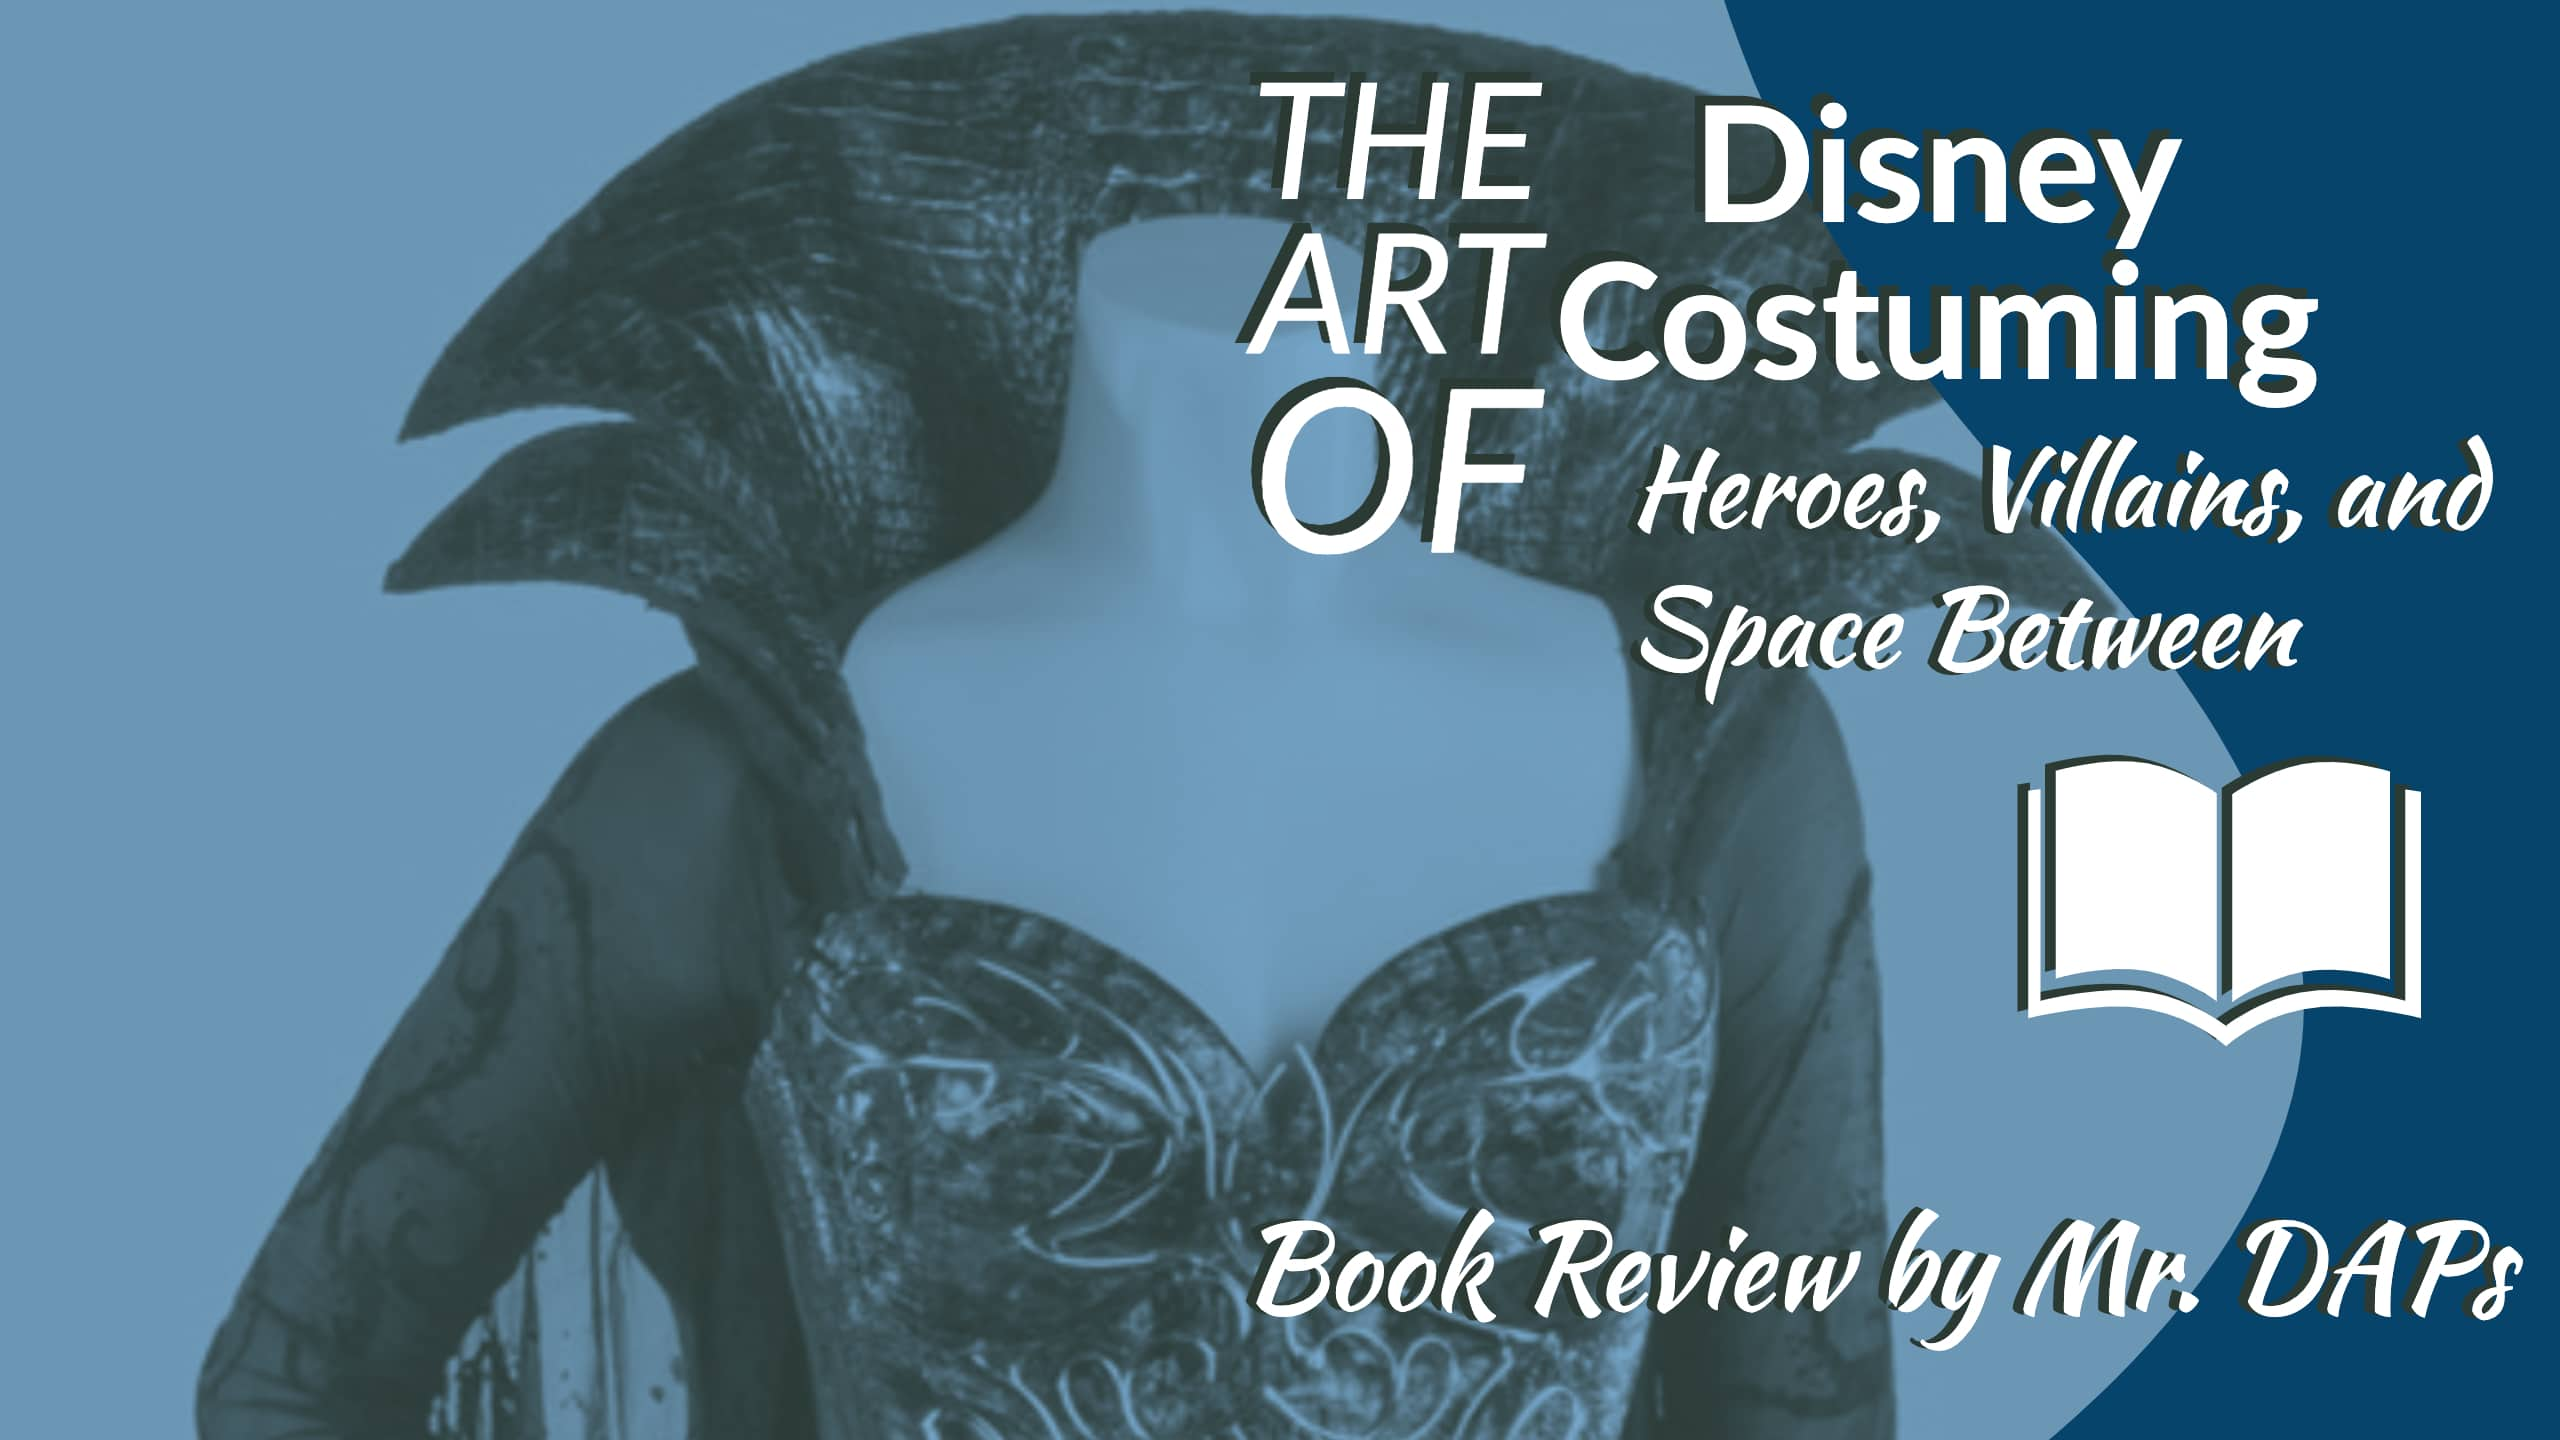 The Art of Disney Costuming: Heroes, Villains, and Spaces Between by Jeff Kurtti – Book Review by Mr. DAPs